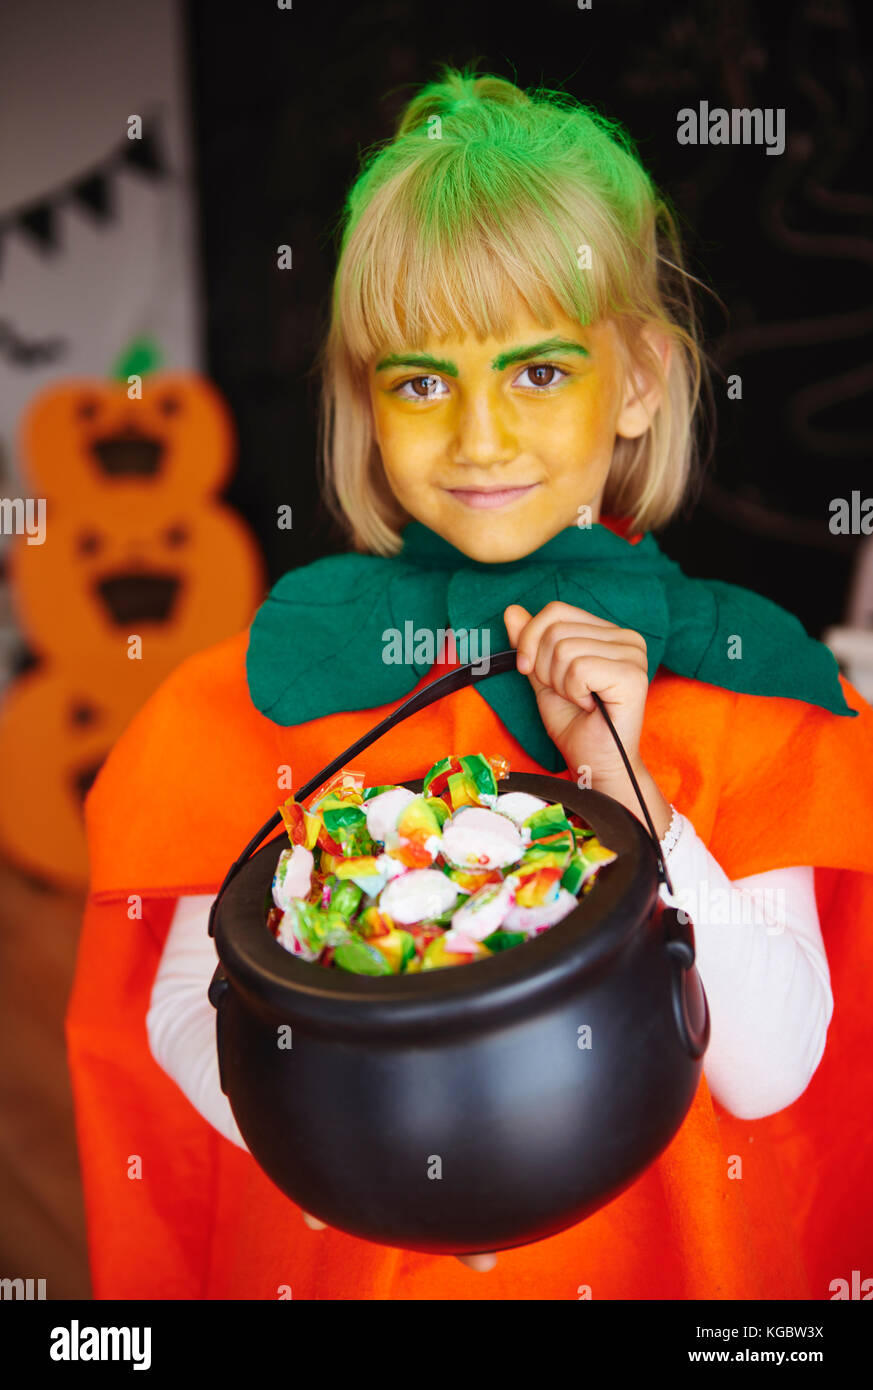 Girl in pumpkin costume holding a bowl full of candies - Stock Image